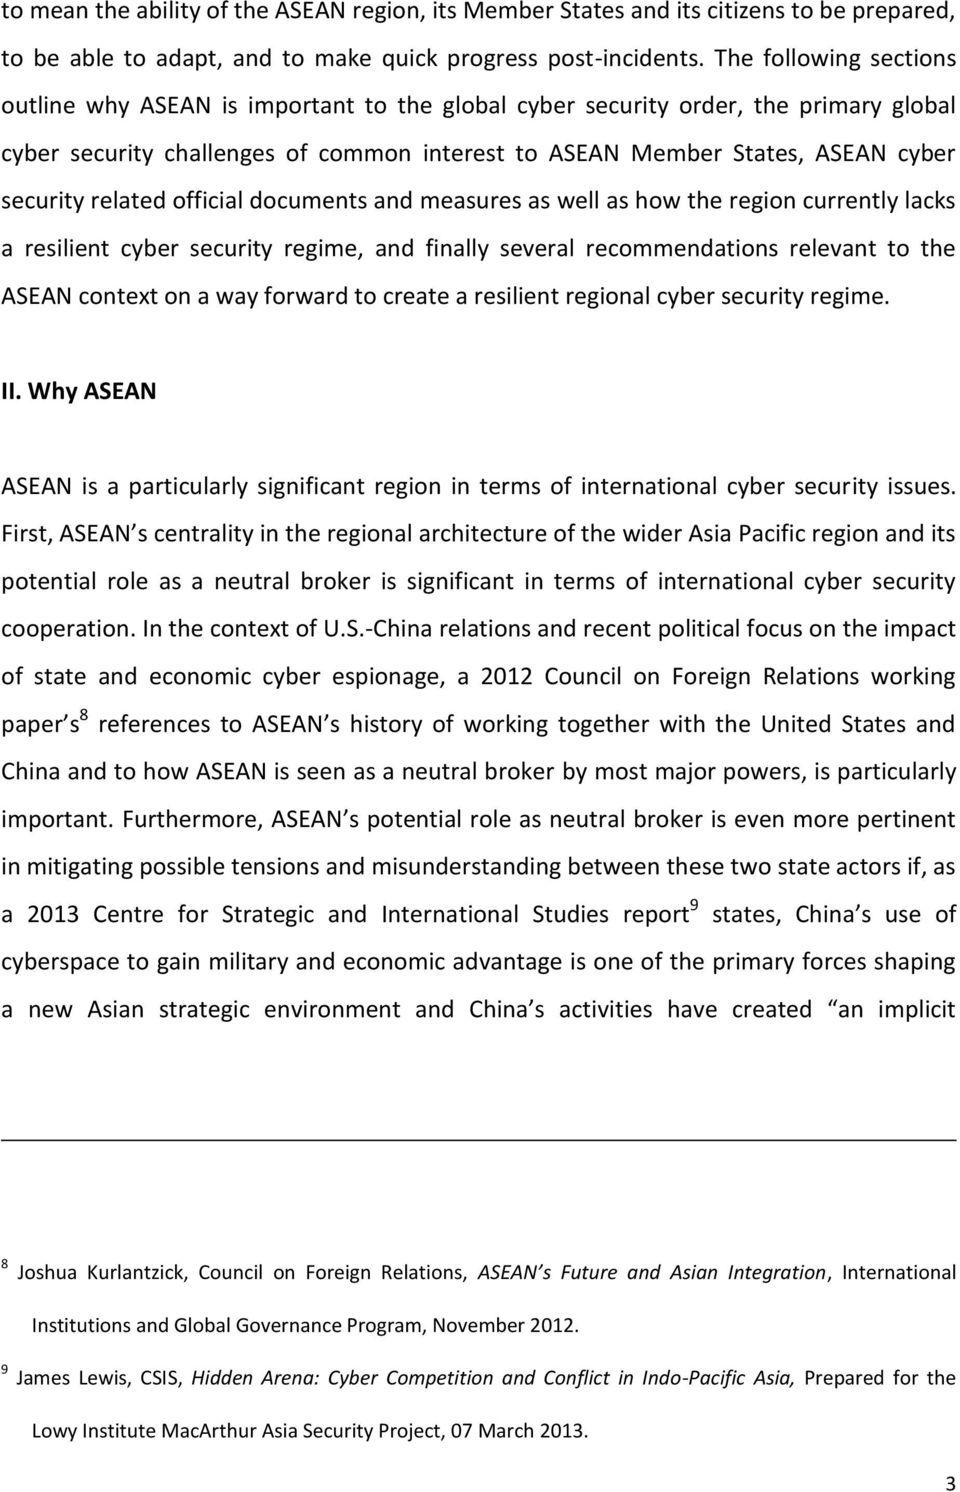 related official documents and measures as well as how the region currently lacks a resilient cyber security regime, and finally several recommendations relevant to the ASEAN context on a way forward